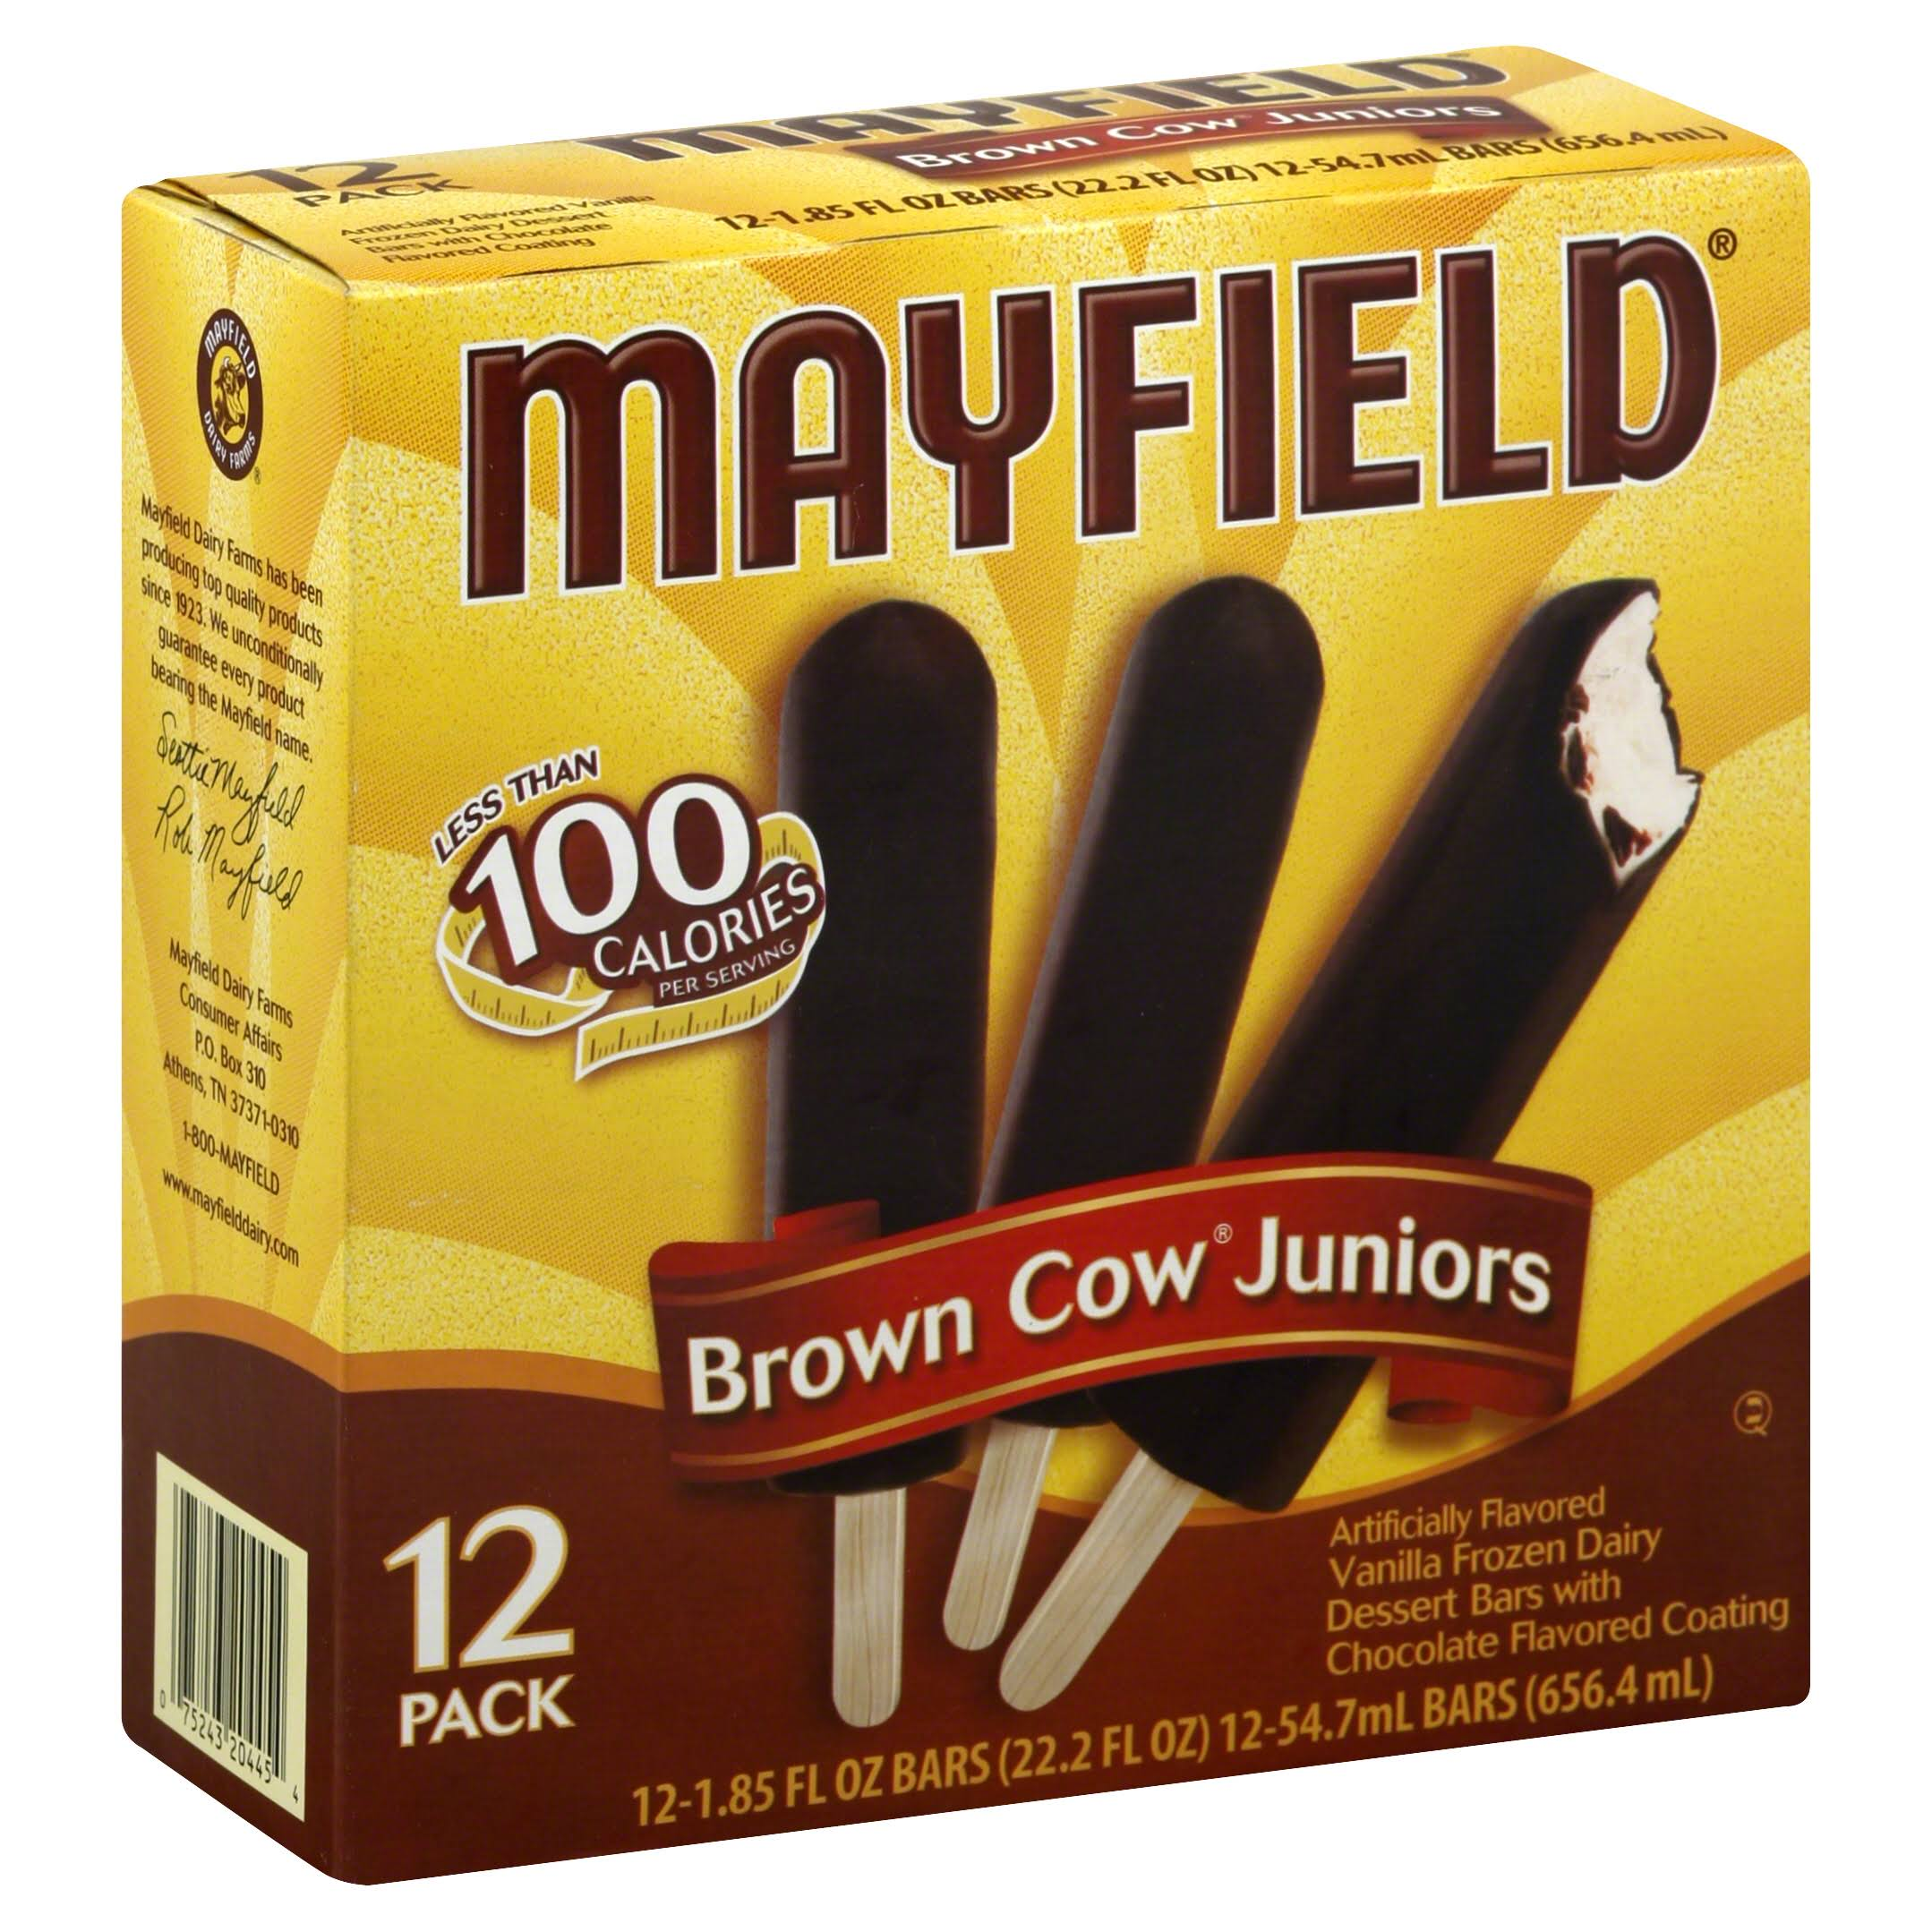 Mayfield Brown Cow Juniors Ice Cream Bars - 1.85oz, 12ct